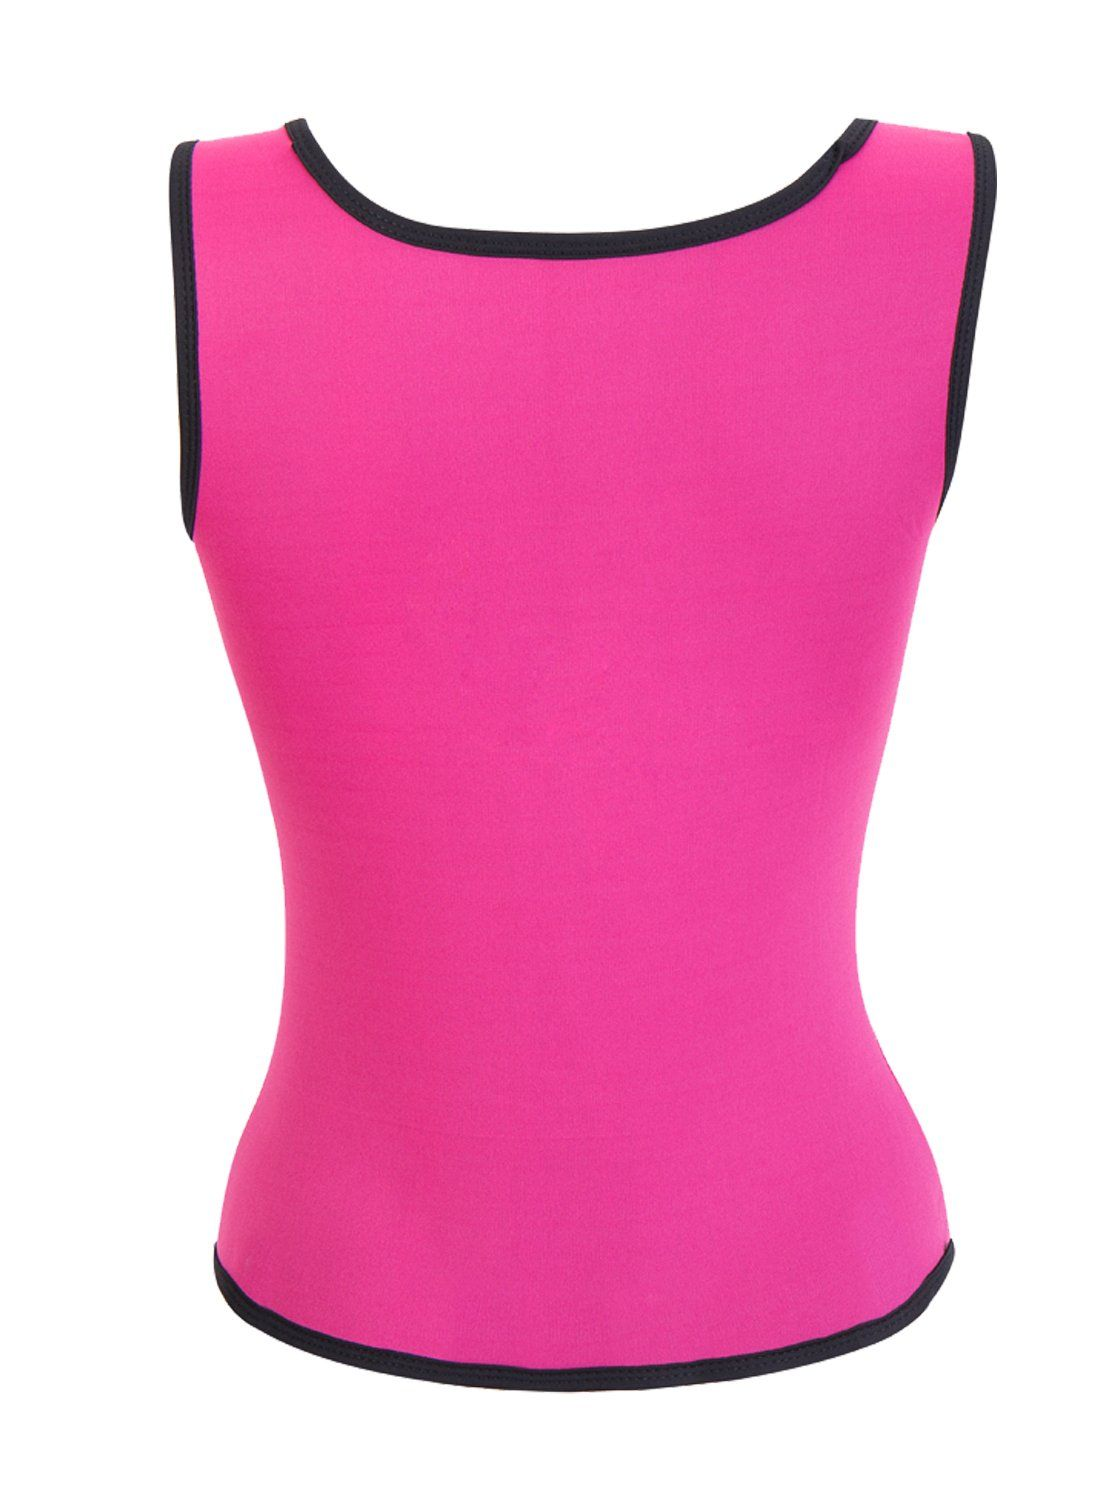 760d3d22f0 Womens Waist Trainer Hot Body Shaper Tank Top Slimming Neoprene Sweat Vest  for Weight Loss    Click image for more details. (Note Amazon affiliate  link)